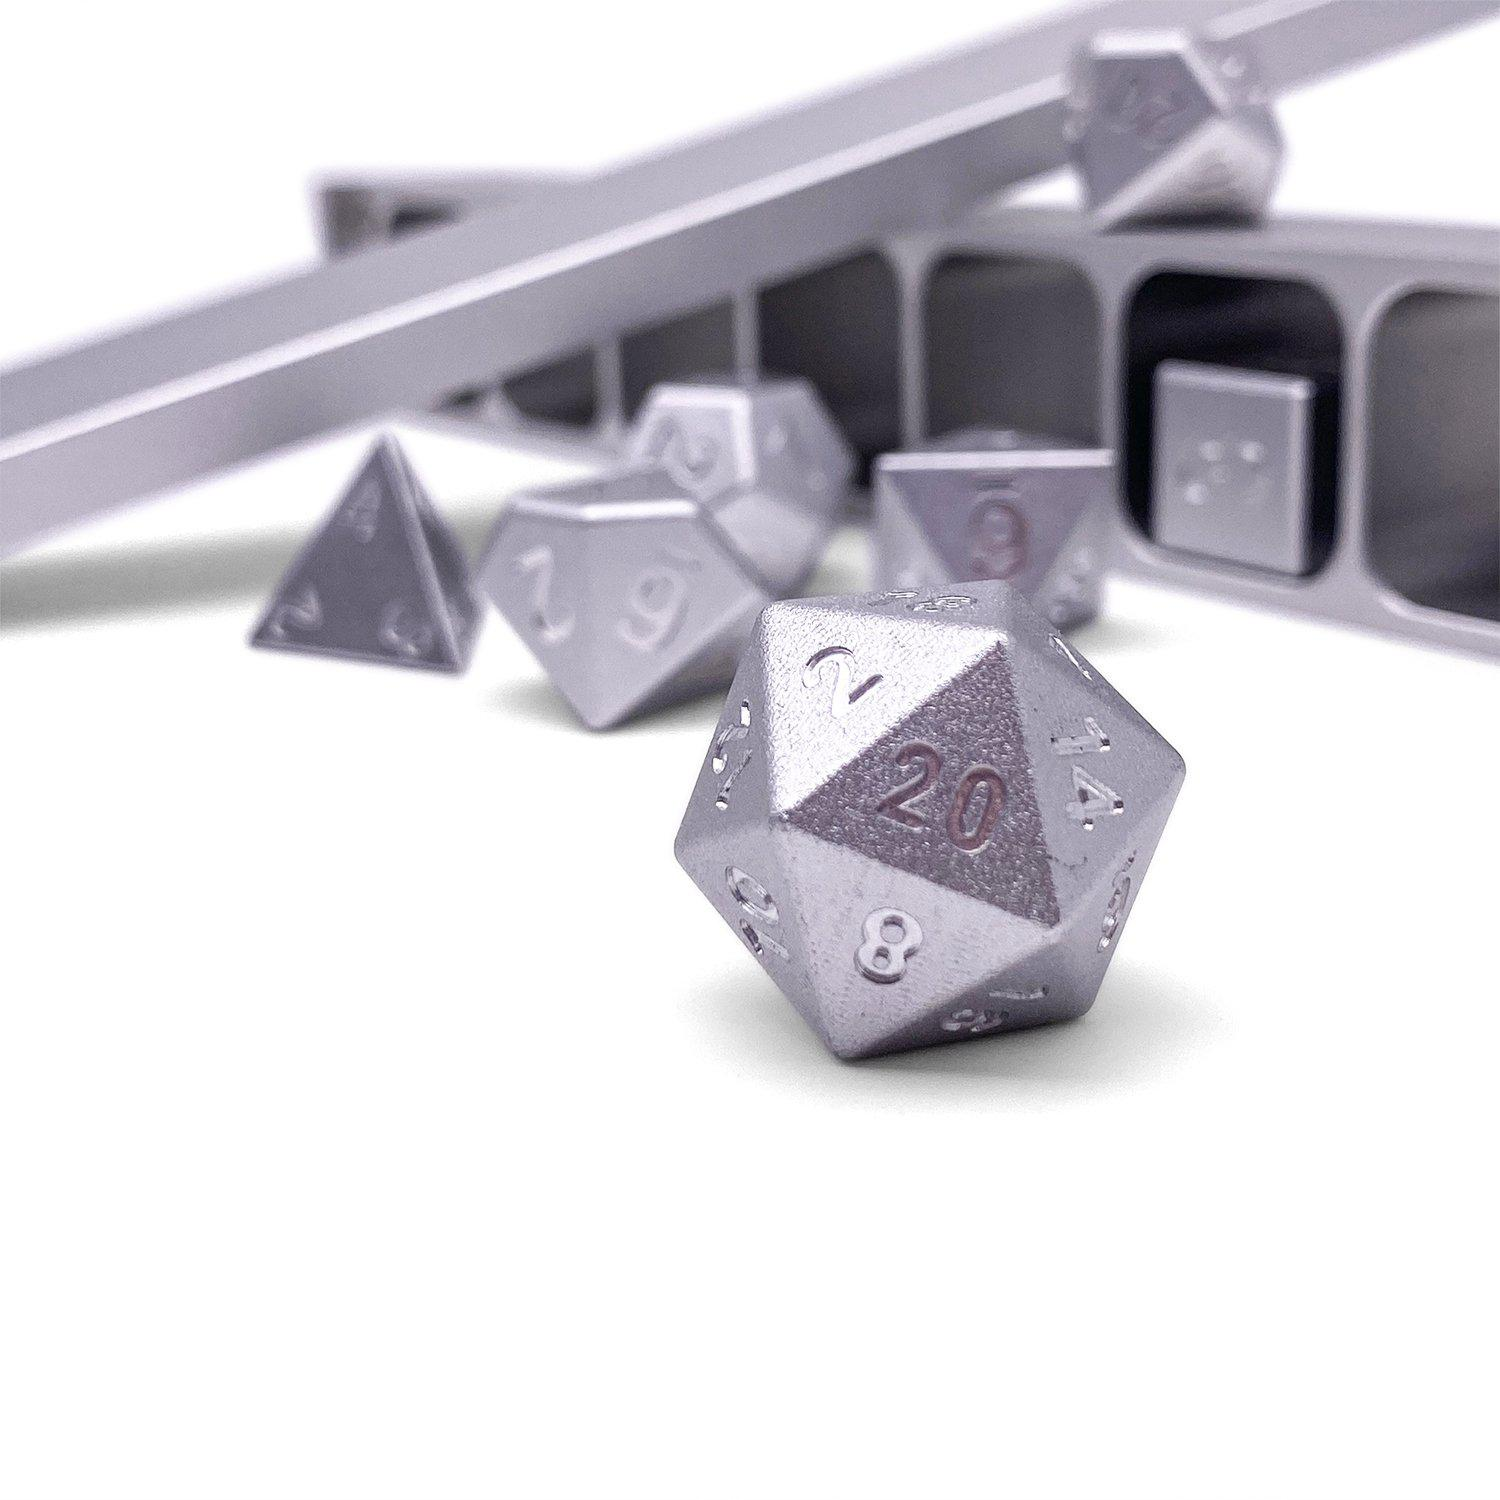 Precision Cnc Aluminum Dice Set With Dice Vault Mithiral Silver Norse Foundry A community devoted to dice, from tabletop gaming dice to virtual dice. precision cnc aluminum dice set with dice vault mithiral silver